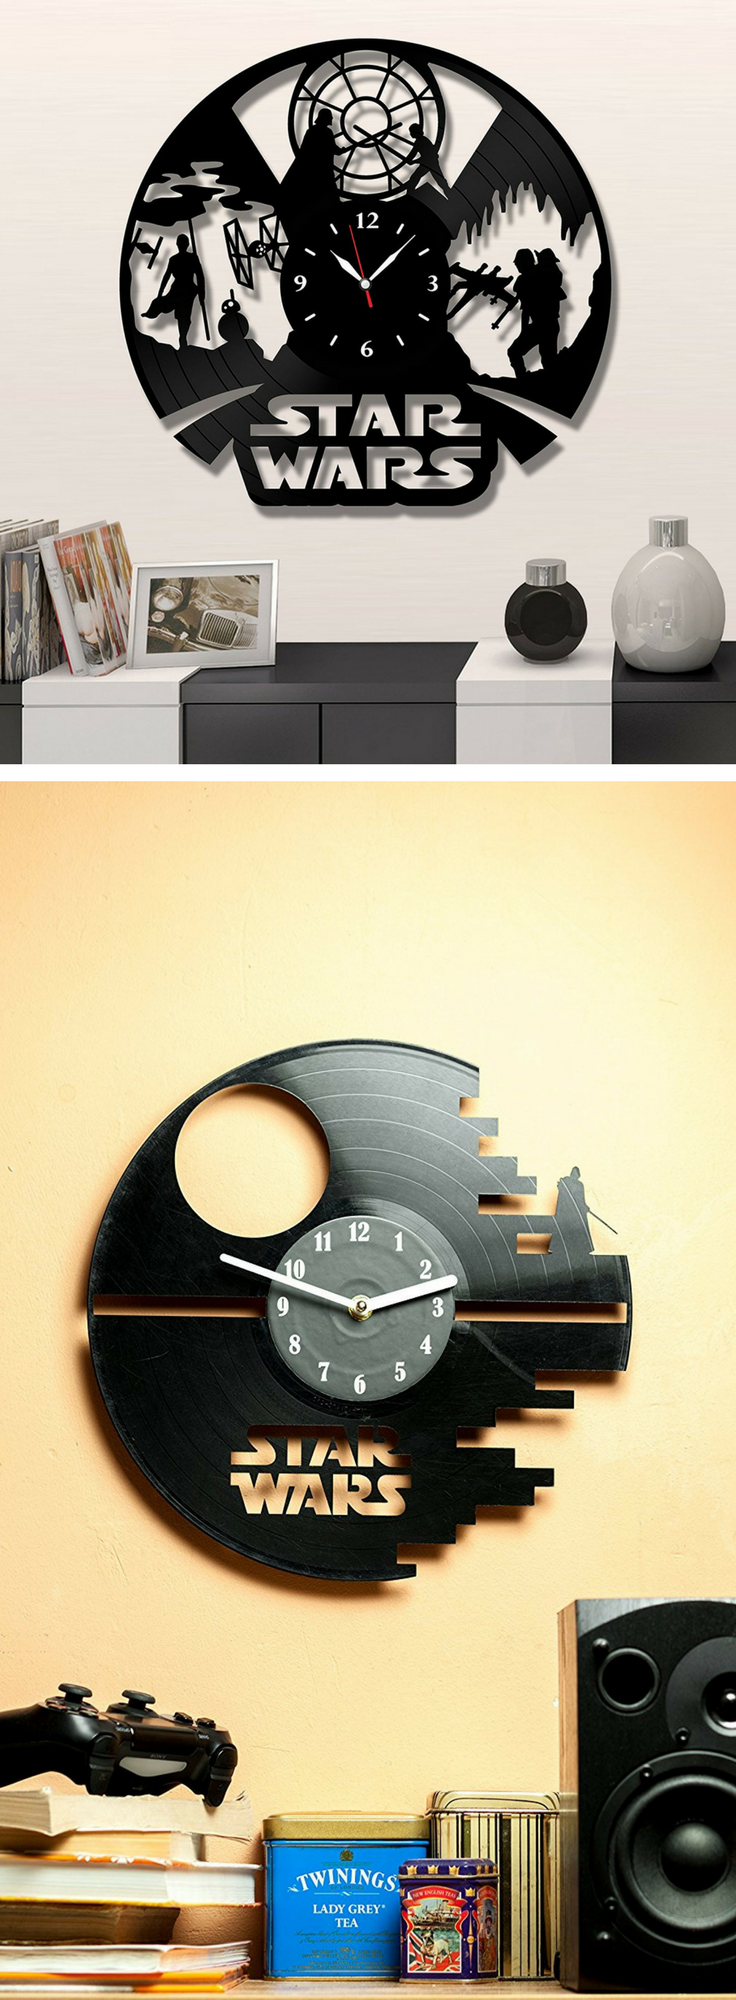 The Best Star Wars Wall Clock - Mind Your Time Before Galaxy Travel ...